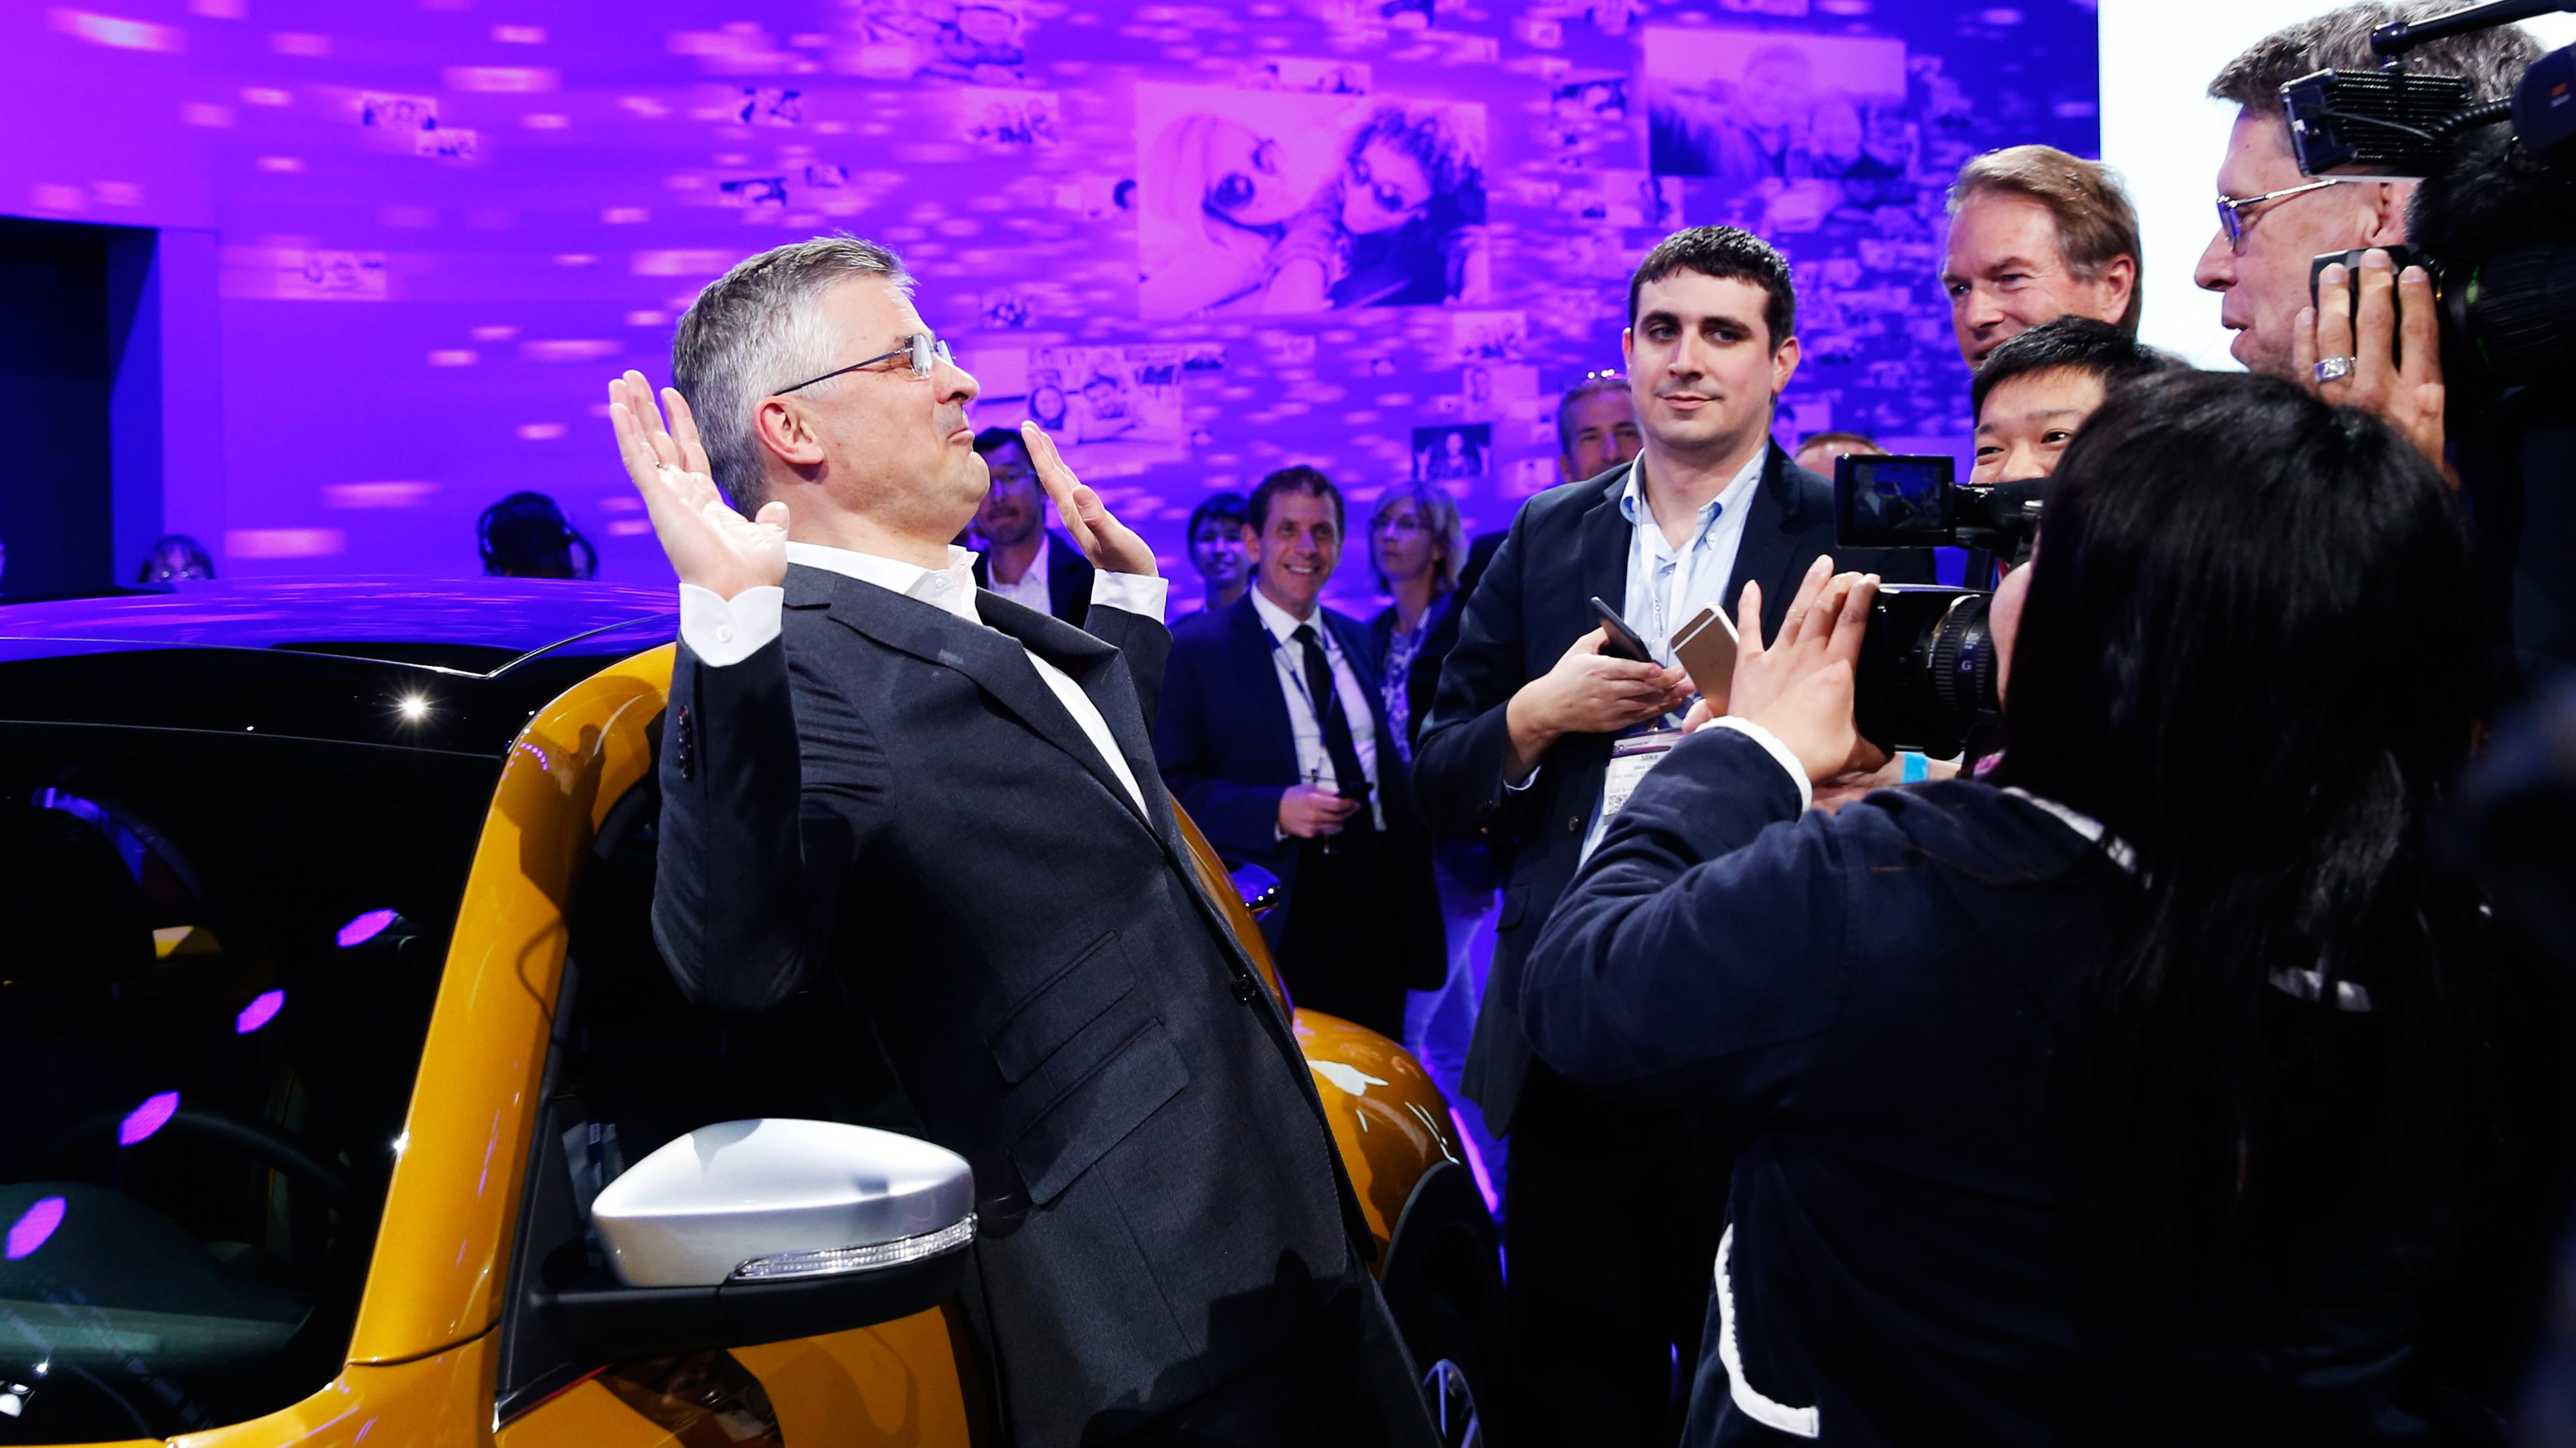 Michael Horn, President and CEO of Volkswagen America, reacts to being mobbed by the media after he apologized for the Volkswagen diesel scandal at the LA Auto Show in Los Angeles, California, United States November 18, 2015